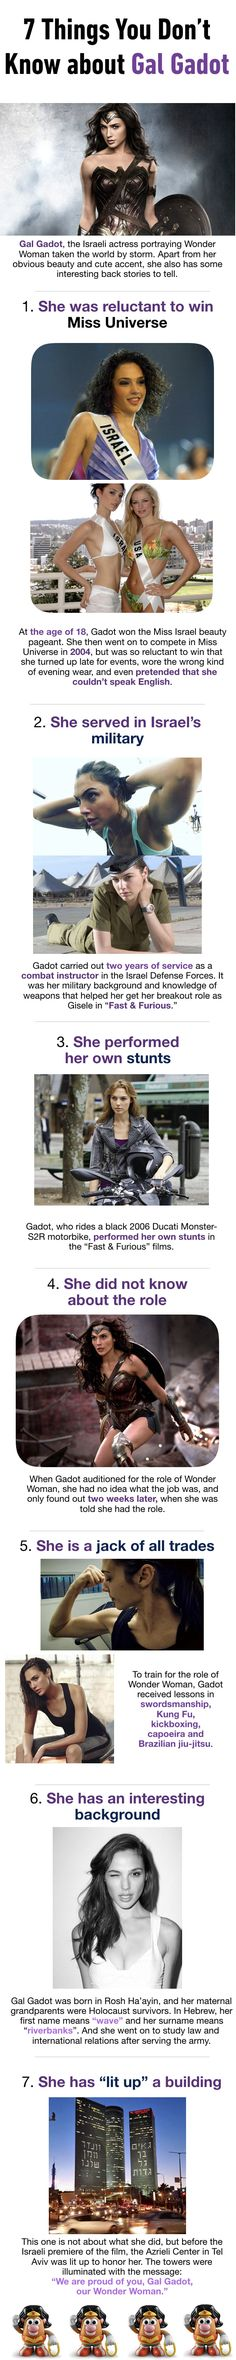 7 Facts You Don't Know About Gal Gadot - Visit to grab an amazing super hero shirt now on sale!